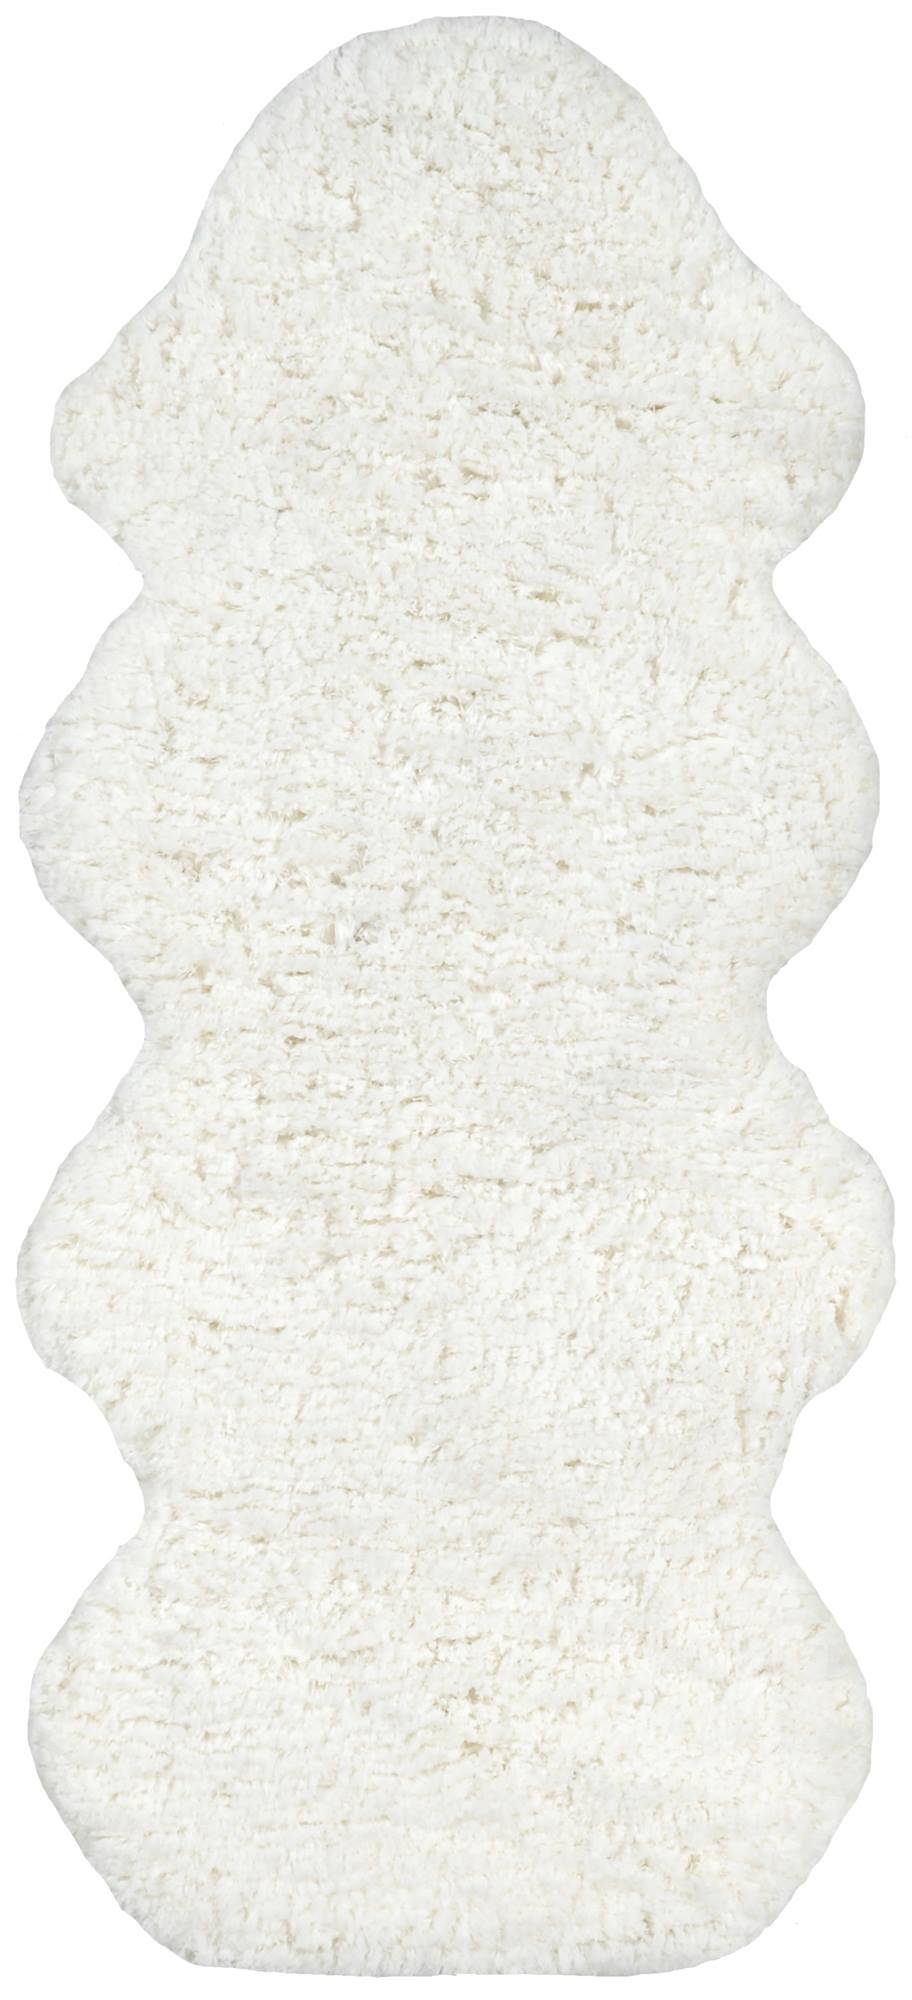 "nuLOOM Faux Sheepskin Matix Shag Rug, 2' x 4' 5"", Natural - Style: Shags Color: Natural Material: 100% Polyester - living-room-soft-furnishings, living-room, area-rugs - 71hKaa TpQL -"